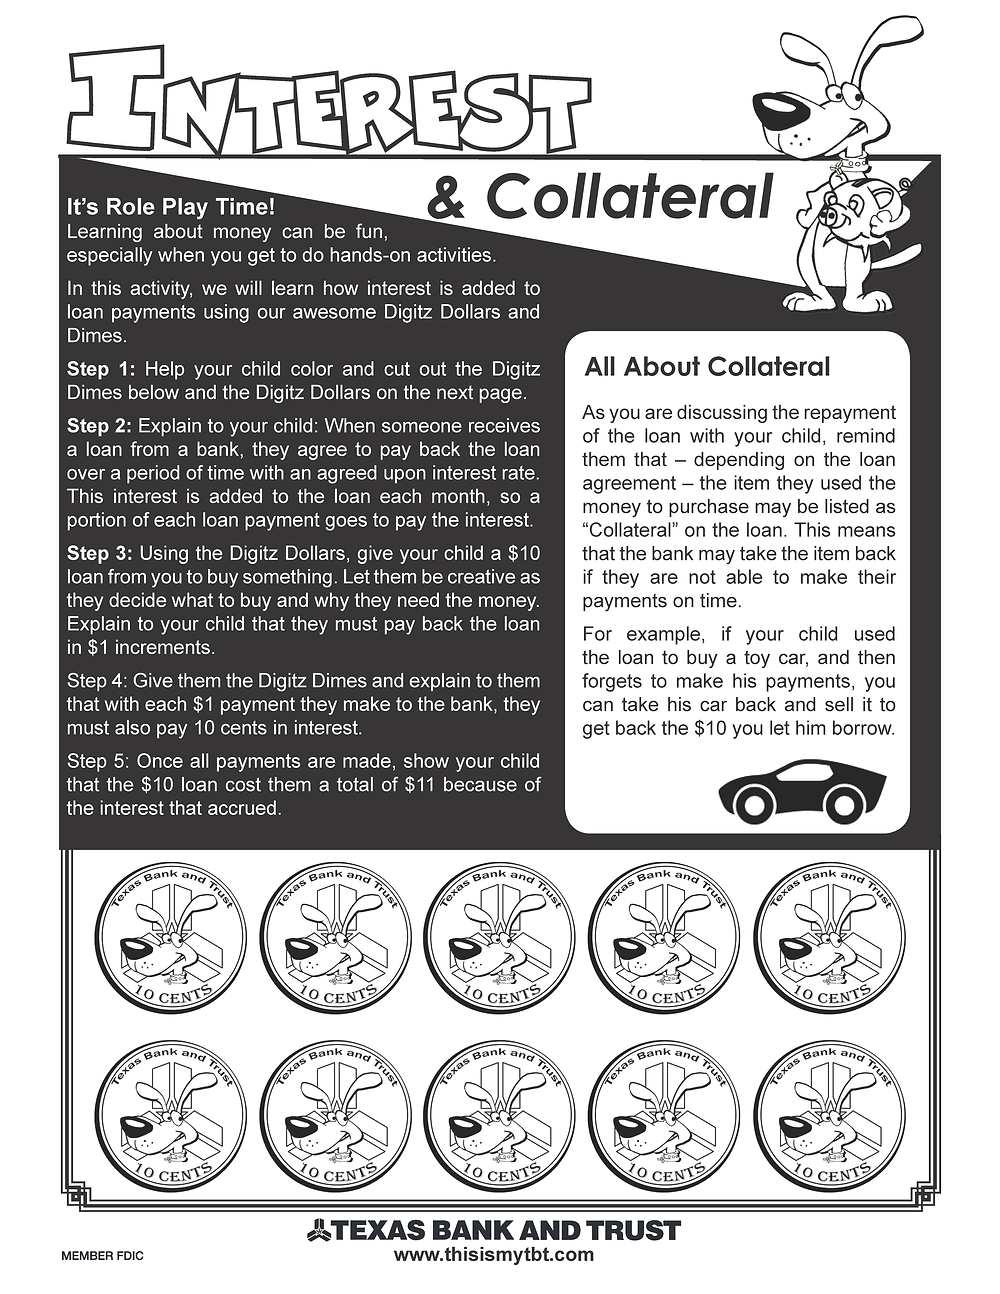 Interest and Collateral